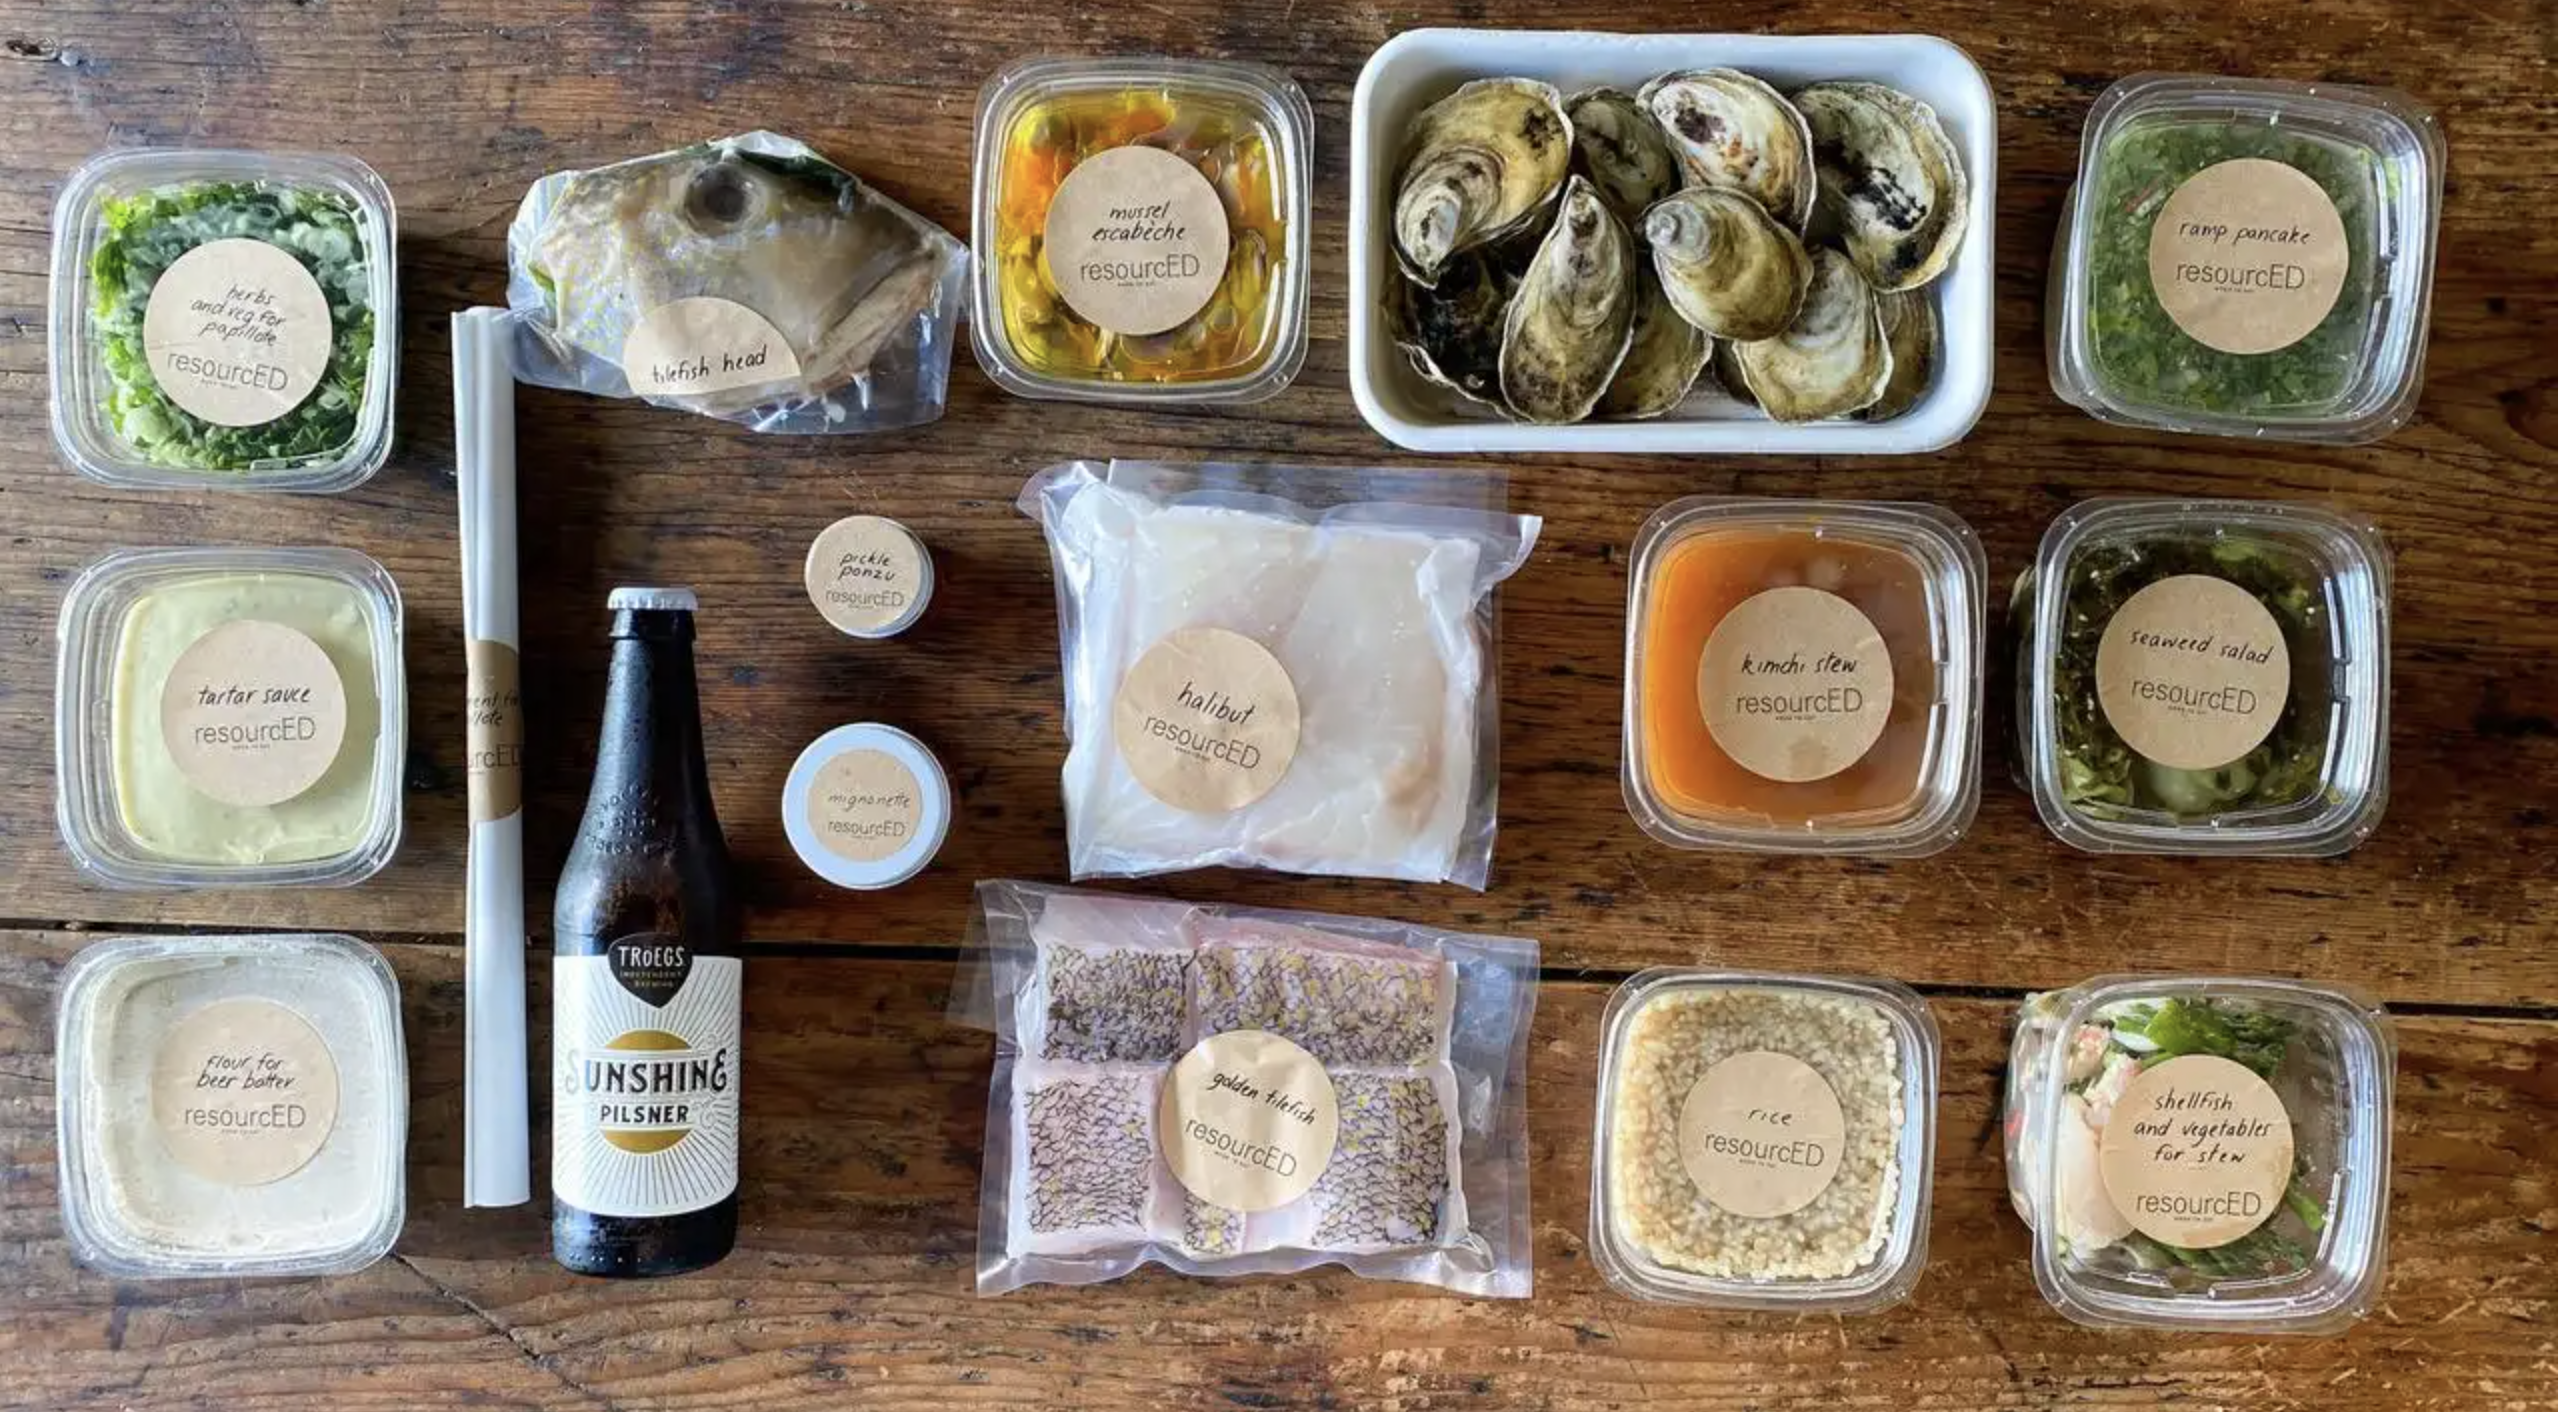 An overhead shot of a table with various food items like oysters and tartar sauce labeled